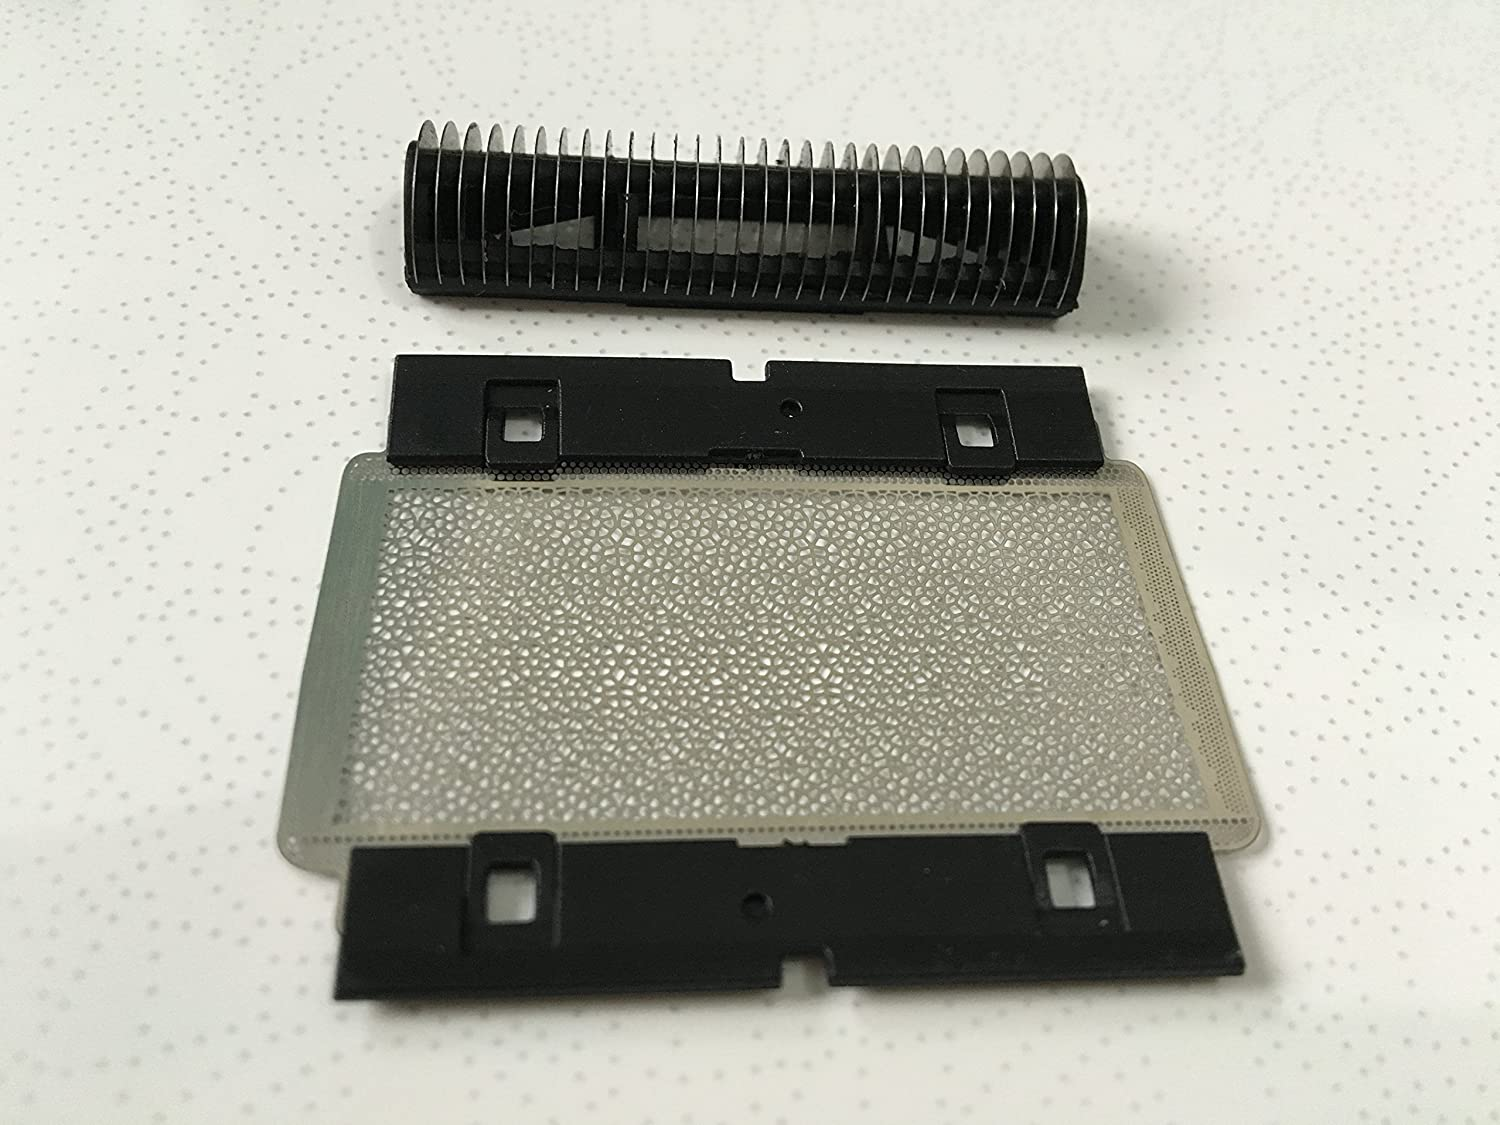 Replacement Foil&Cutter for Braun Shaver/Razor 3305, 3310, 3315, 3600, 3610, 3612, 3614, 3615, 3731, 3732, 3733, 3734, 3770, 3773, 3772, 3774, 3775, 5628, 5629, 5632, 5634, 5635